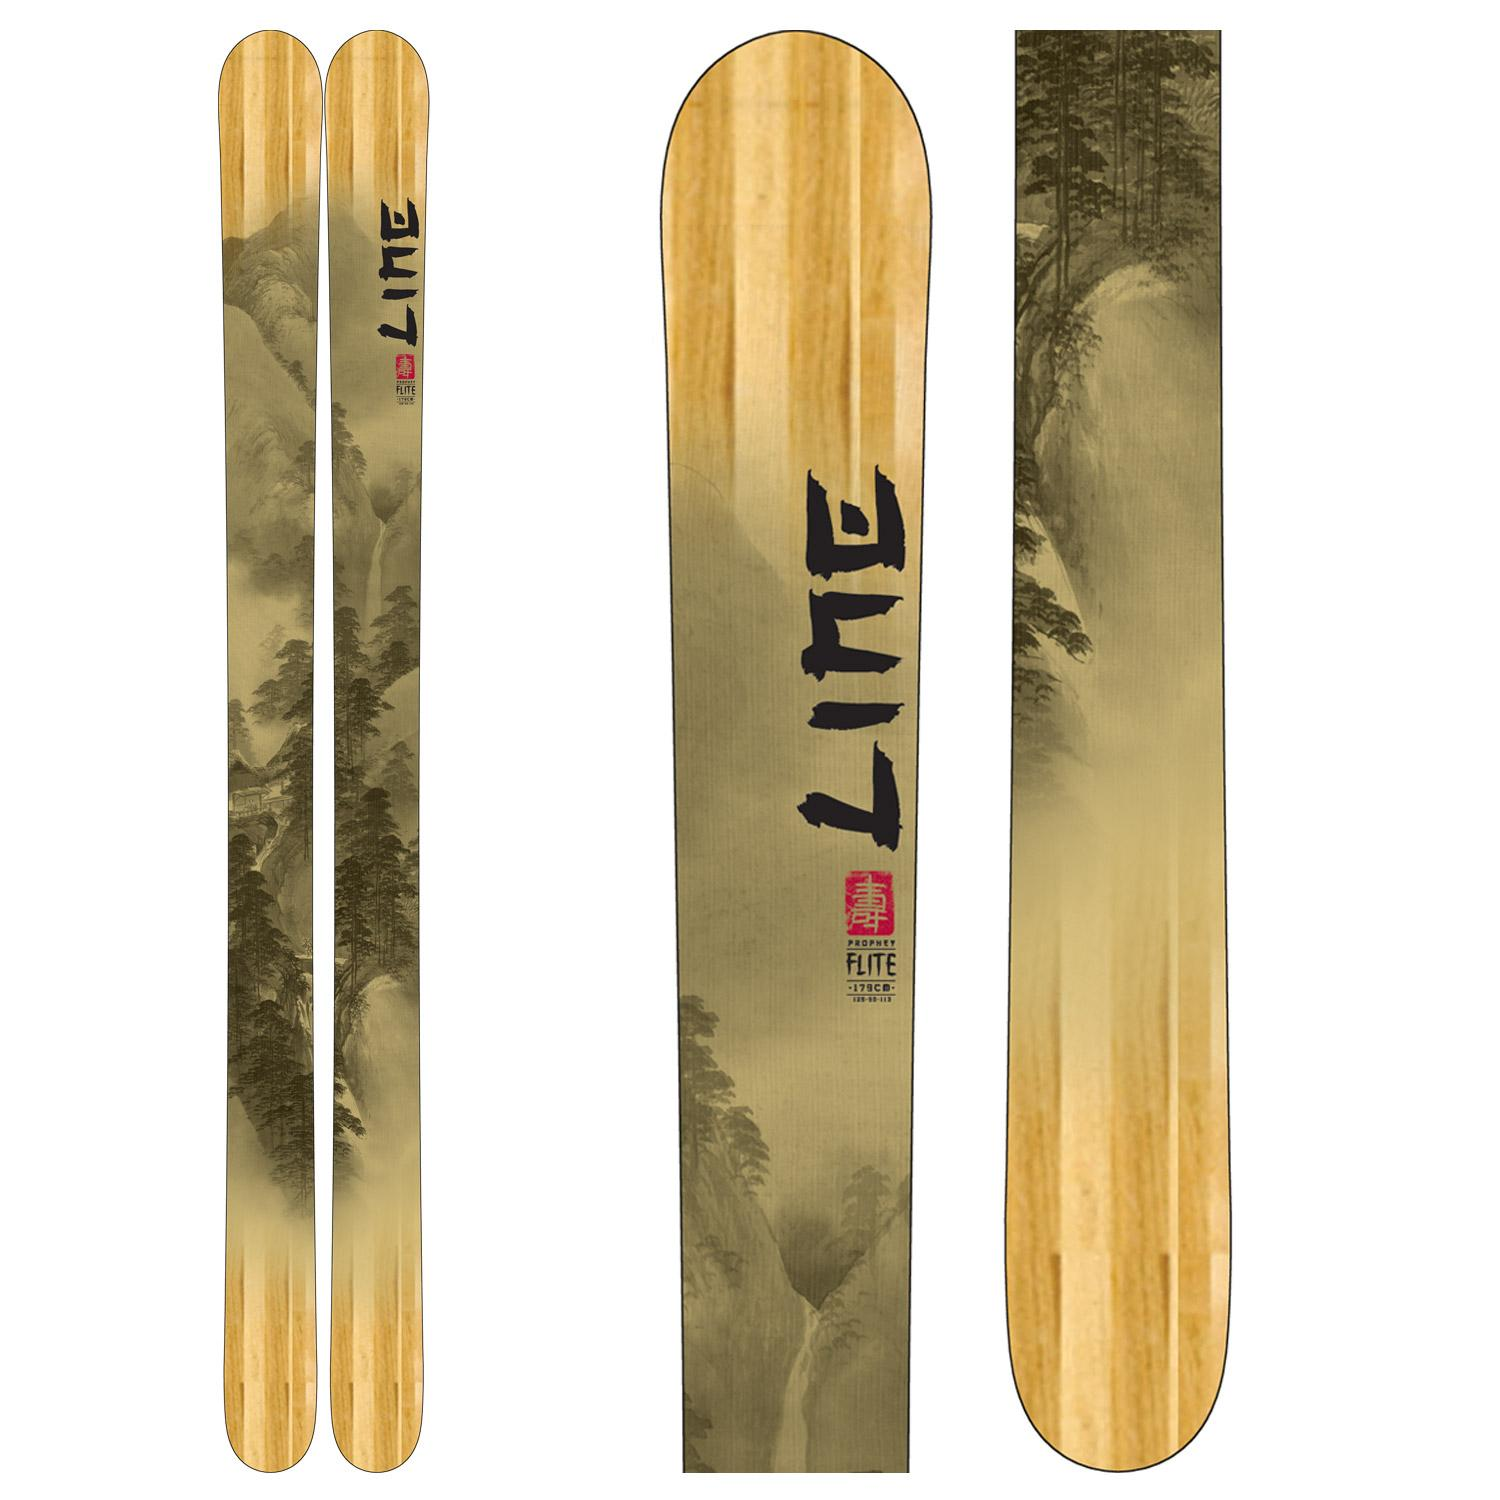 Line Celebrity 90 Womens Skis Review | Best Downhill Skis